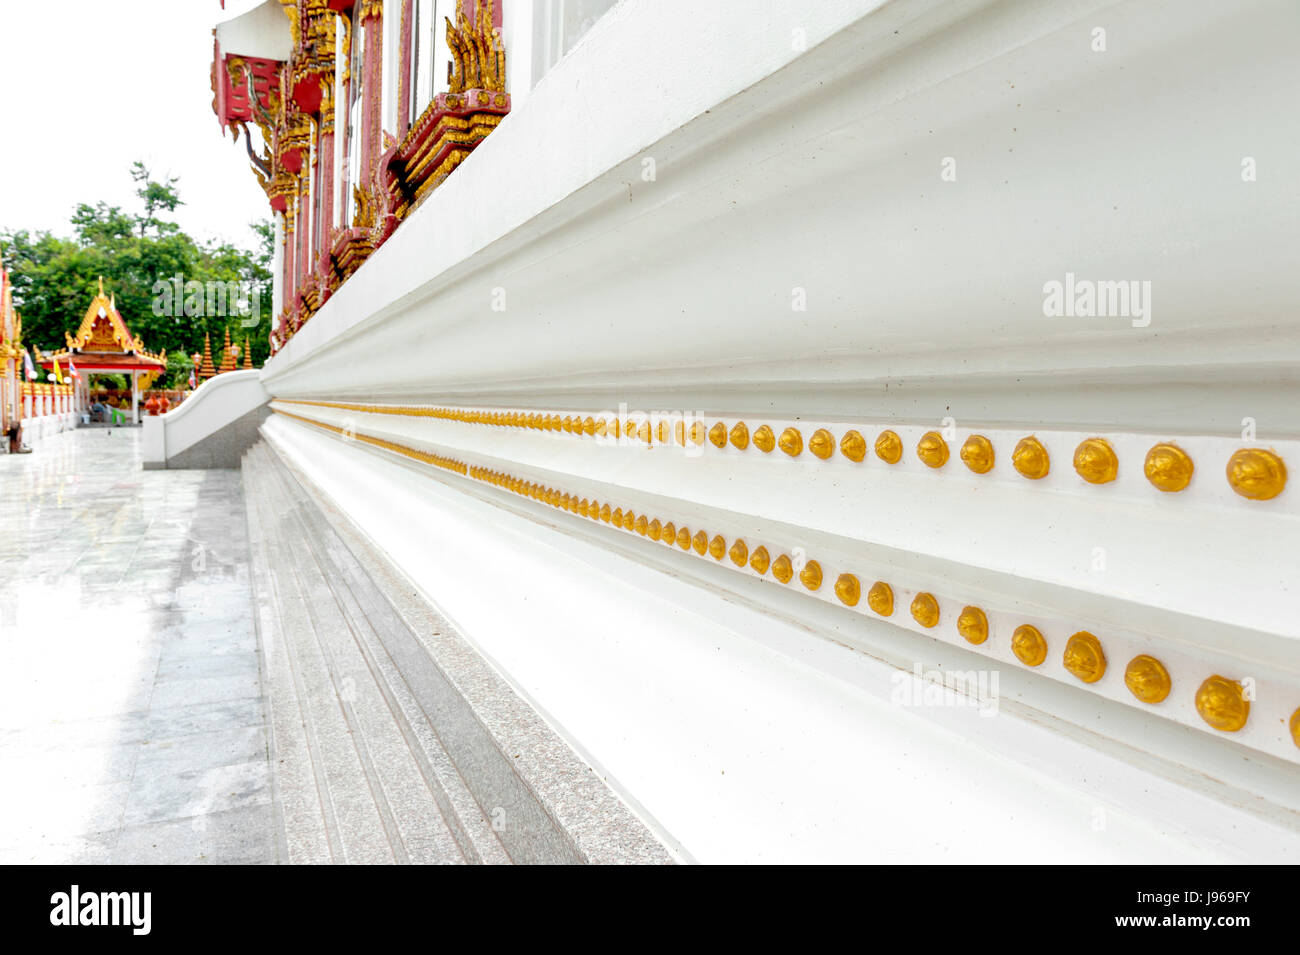 Gold decoration around Ubosot (chapel) of Wat Mahathat Temple in Yasothon, Thailand - Stock Image